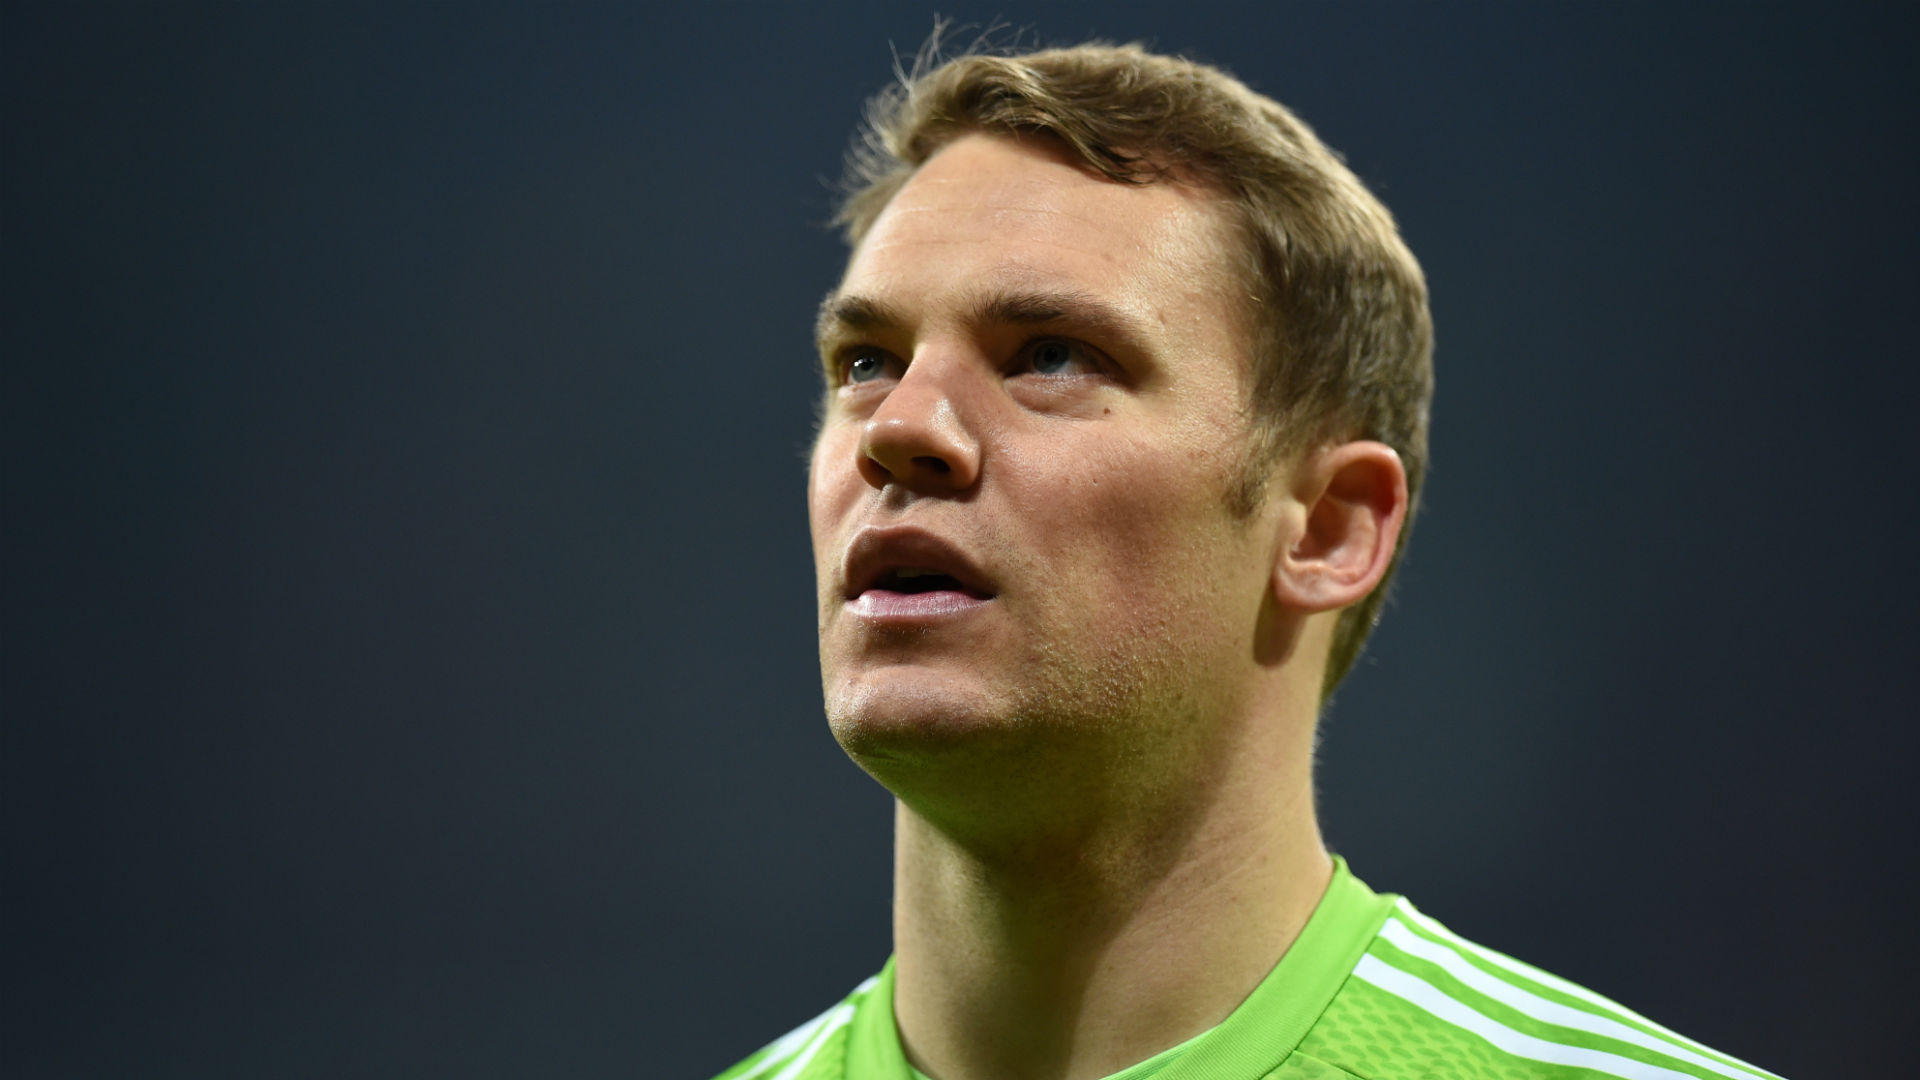 He races 25 yards out of his goal now to stop another Barcelona attack. If Neuer doesn't get our Top of the Match award, Imma give our player rater a piece ... - manuelneuer-cropped_1ikh4wpqspwm11b709c7y61mu1